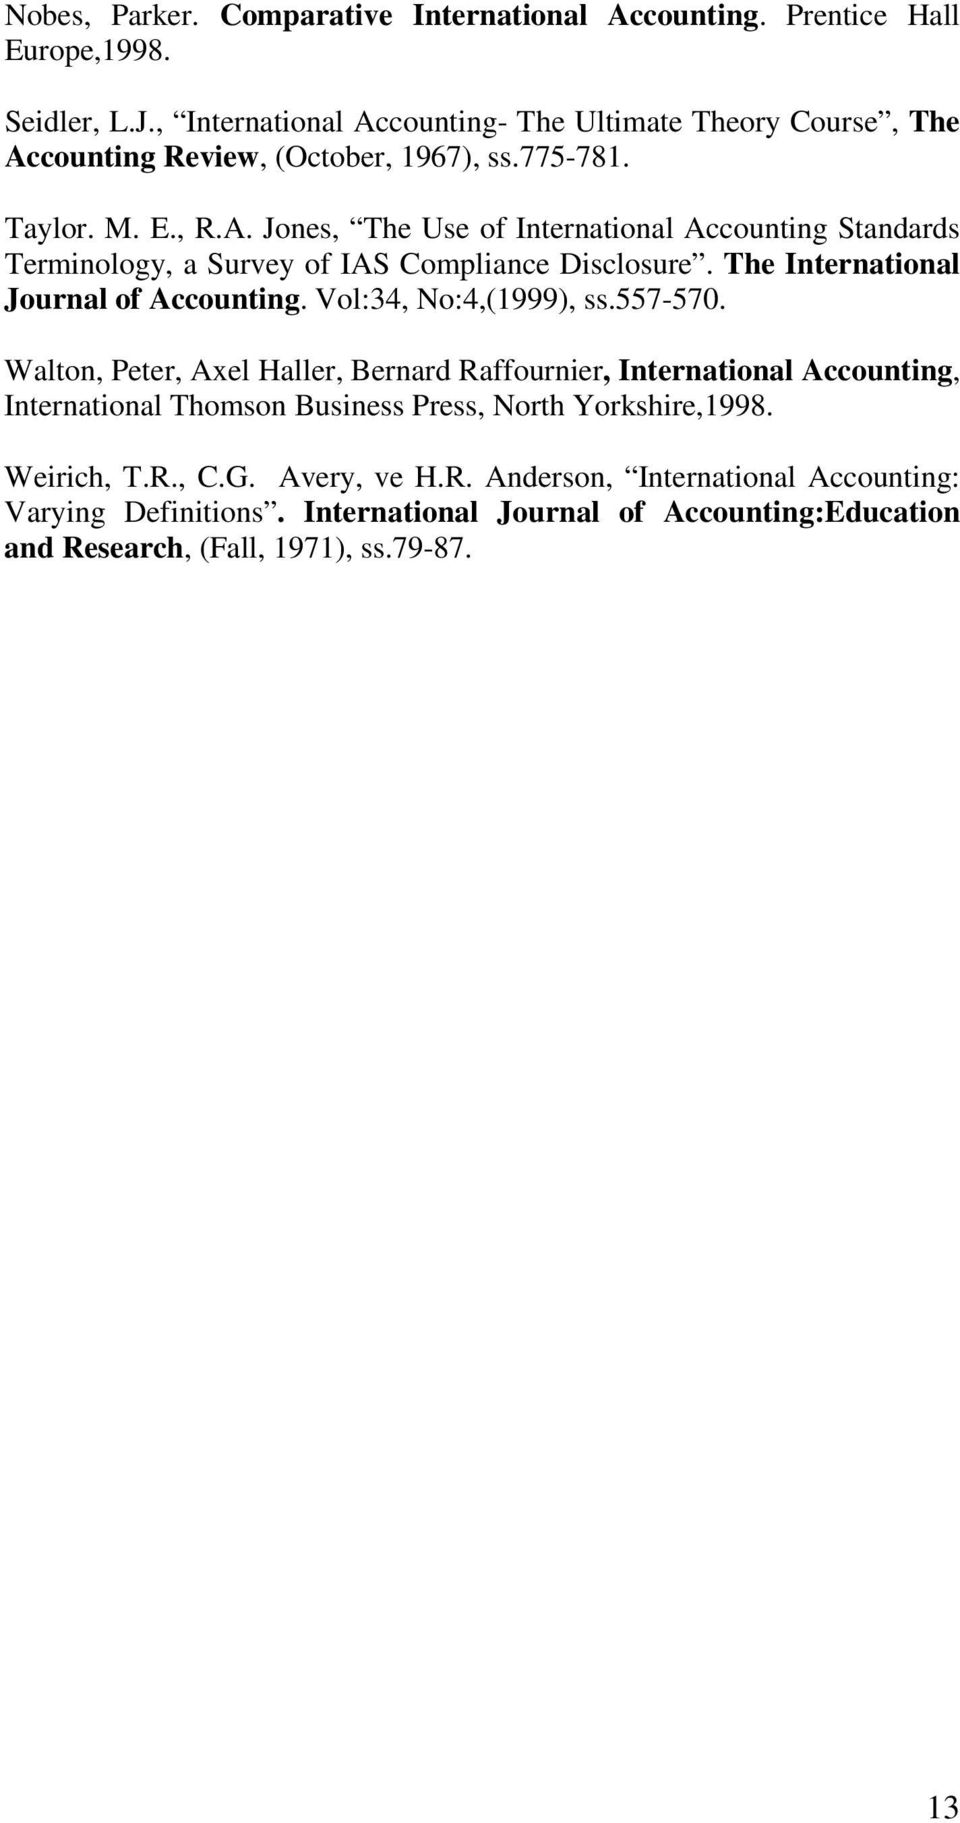 The International Journal of Accounting. Vol:34, No:4,(1999), ss.557-570.